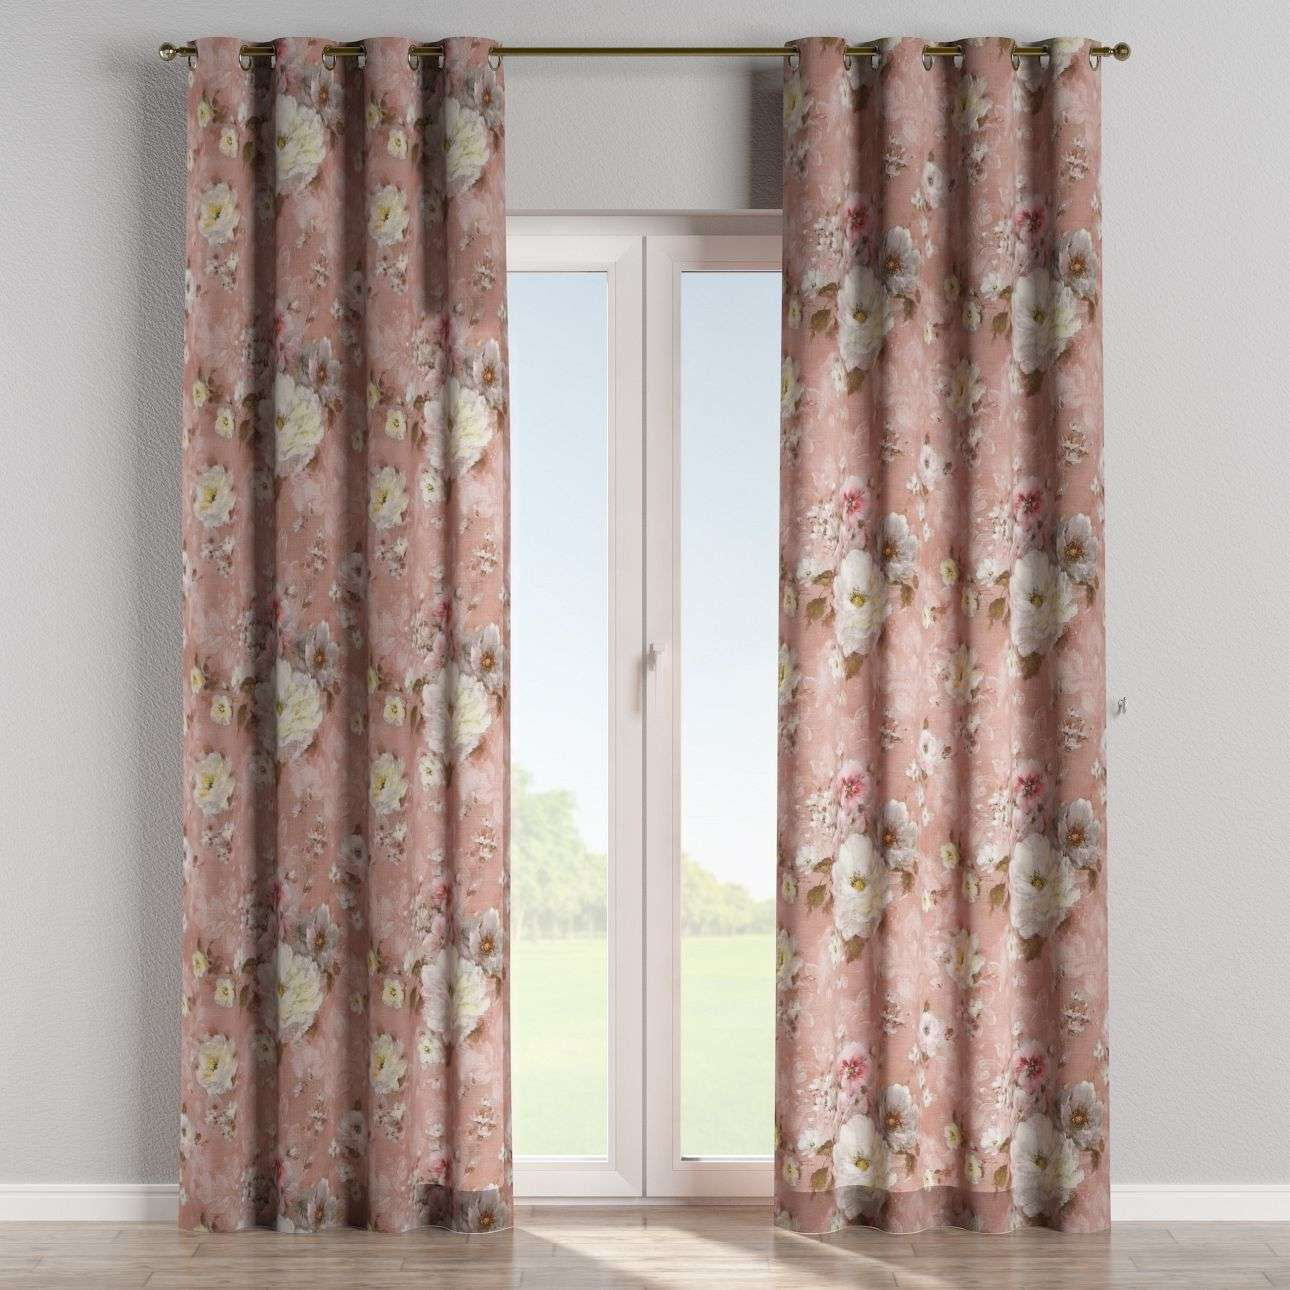 Eyelet curtains 130 x 260 cm (51 x 102 inch) in collection Monet, fabric: 137-83